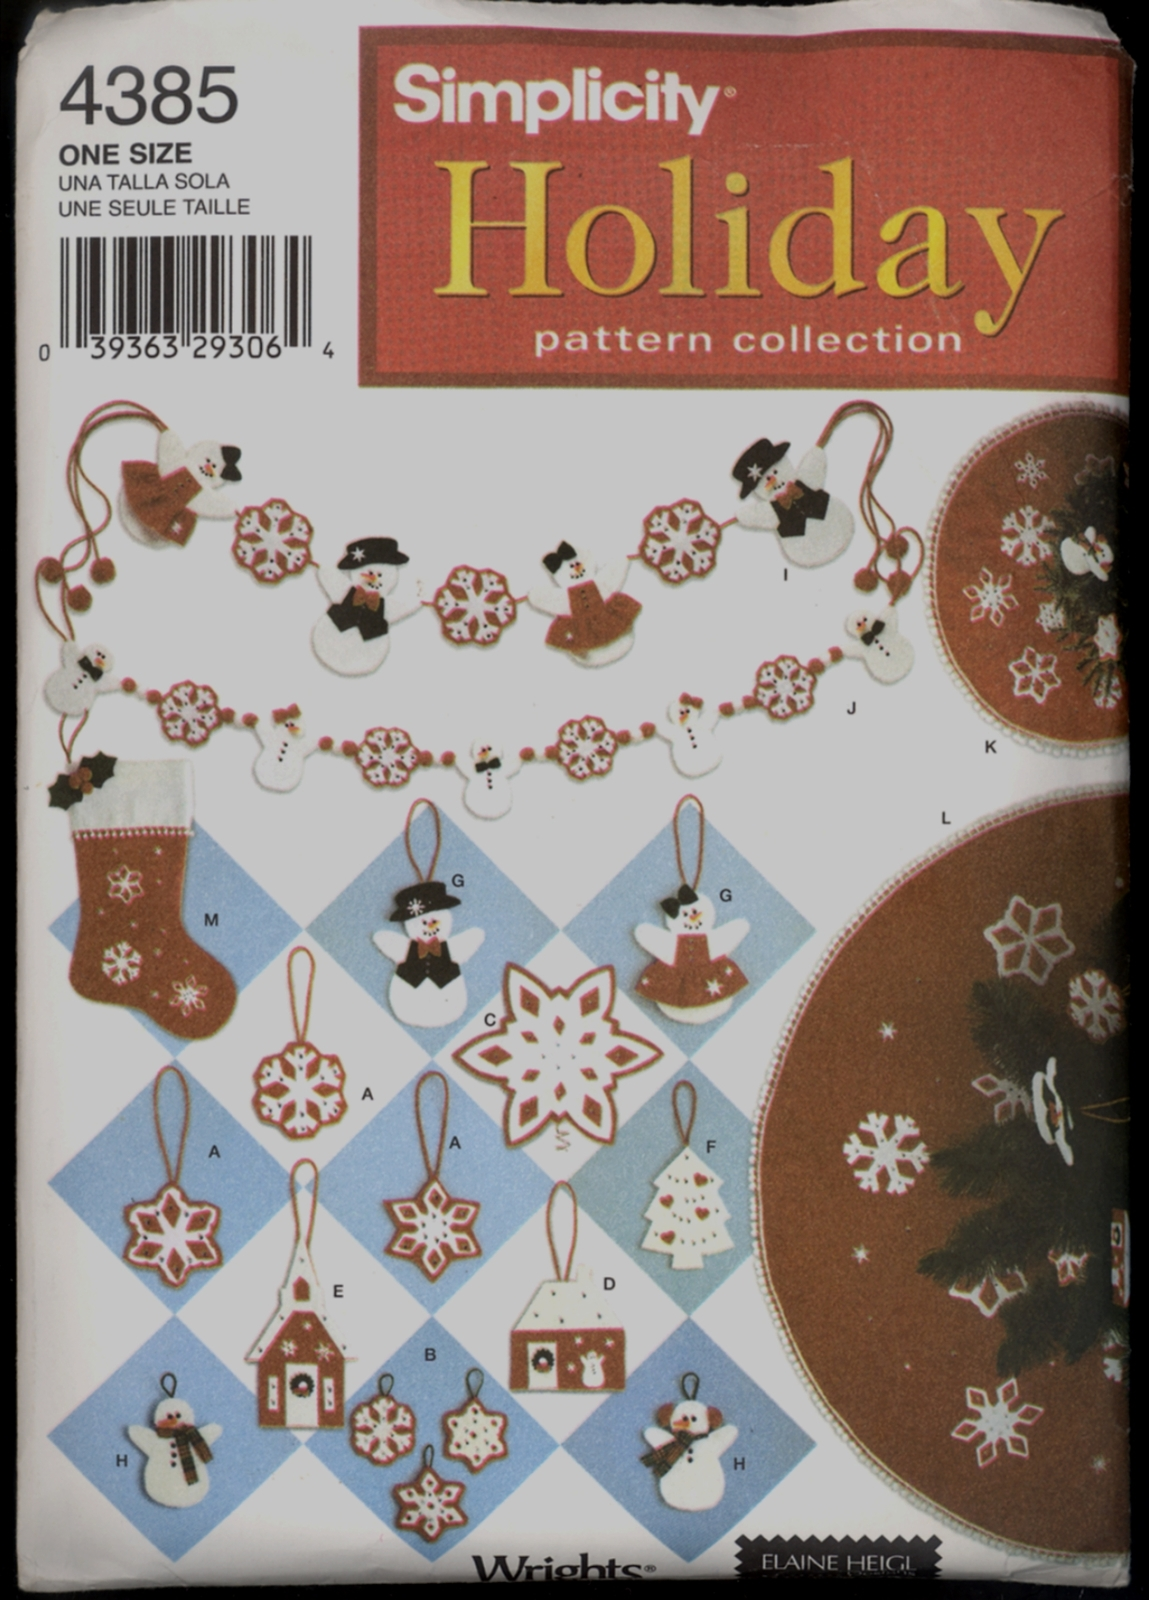 UNC Christmas Tree Skirt Ornaments Stocking Elaine Heigl Simplicity 4385 Pattern